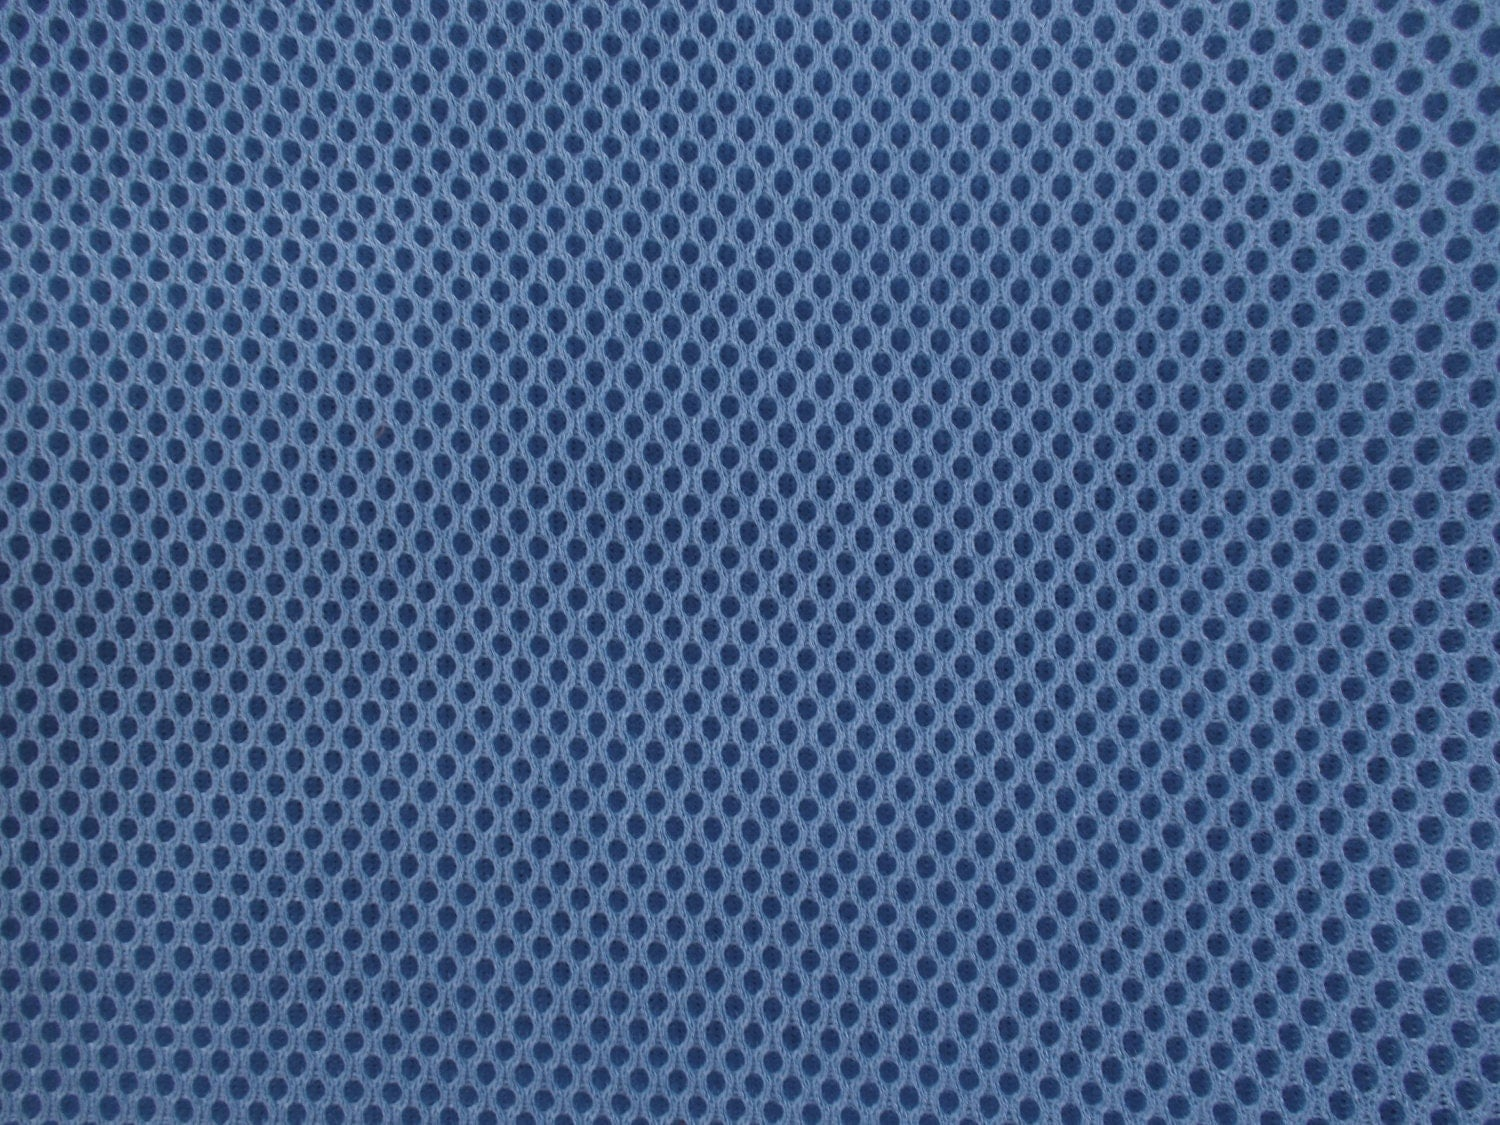 60 Wide Padded Foam Mesh Fabric Slate Blue Auto Upholstery Bags Shoes Backpacks Straps Crafts Spacer